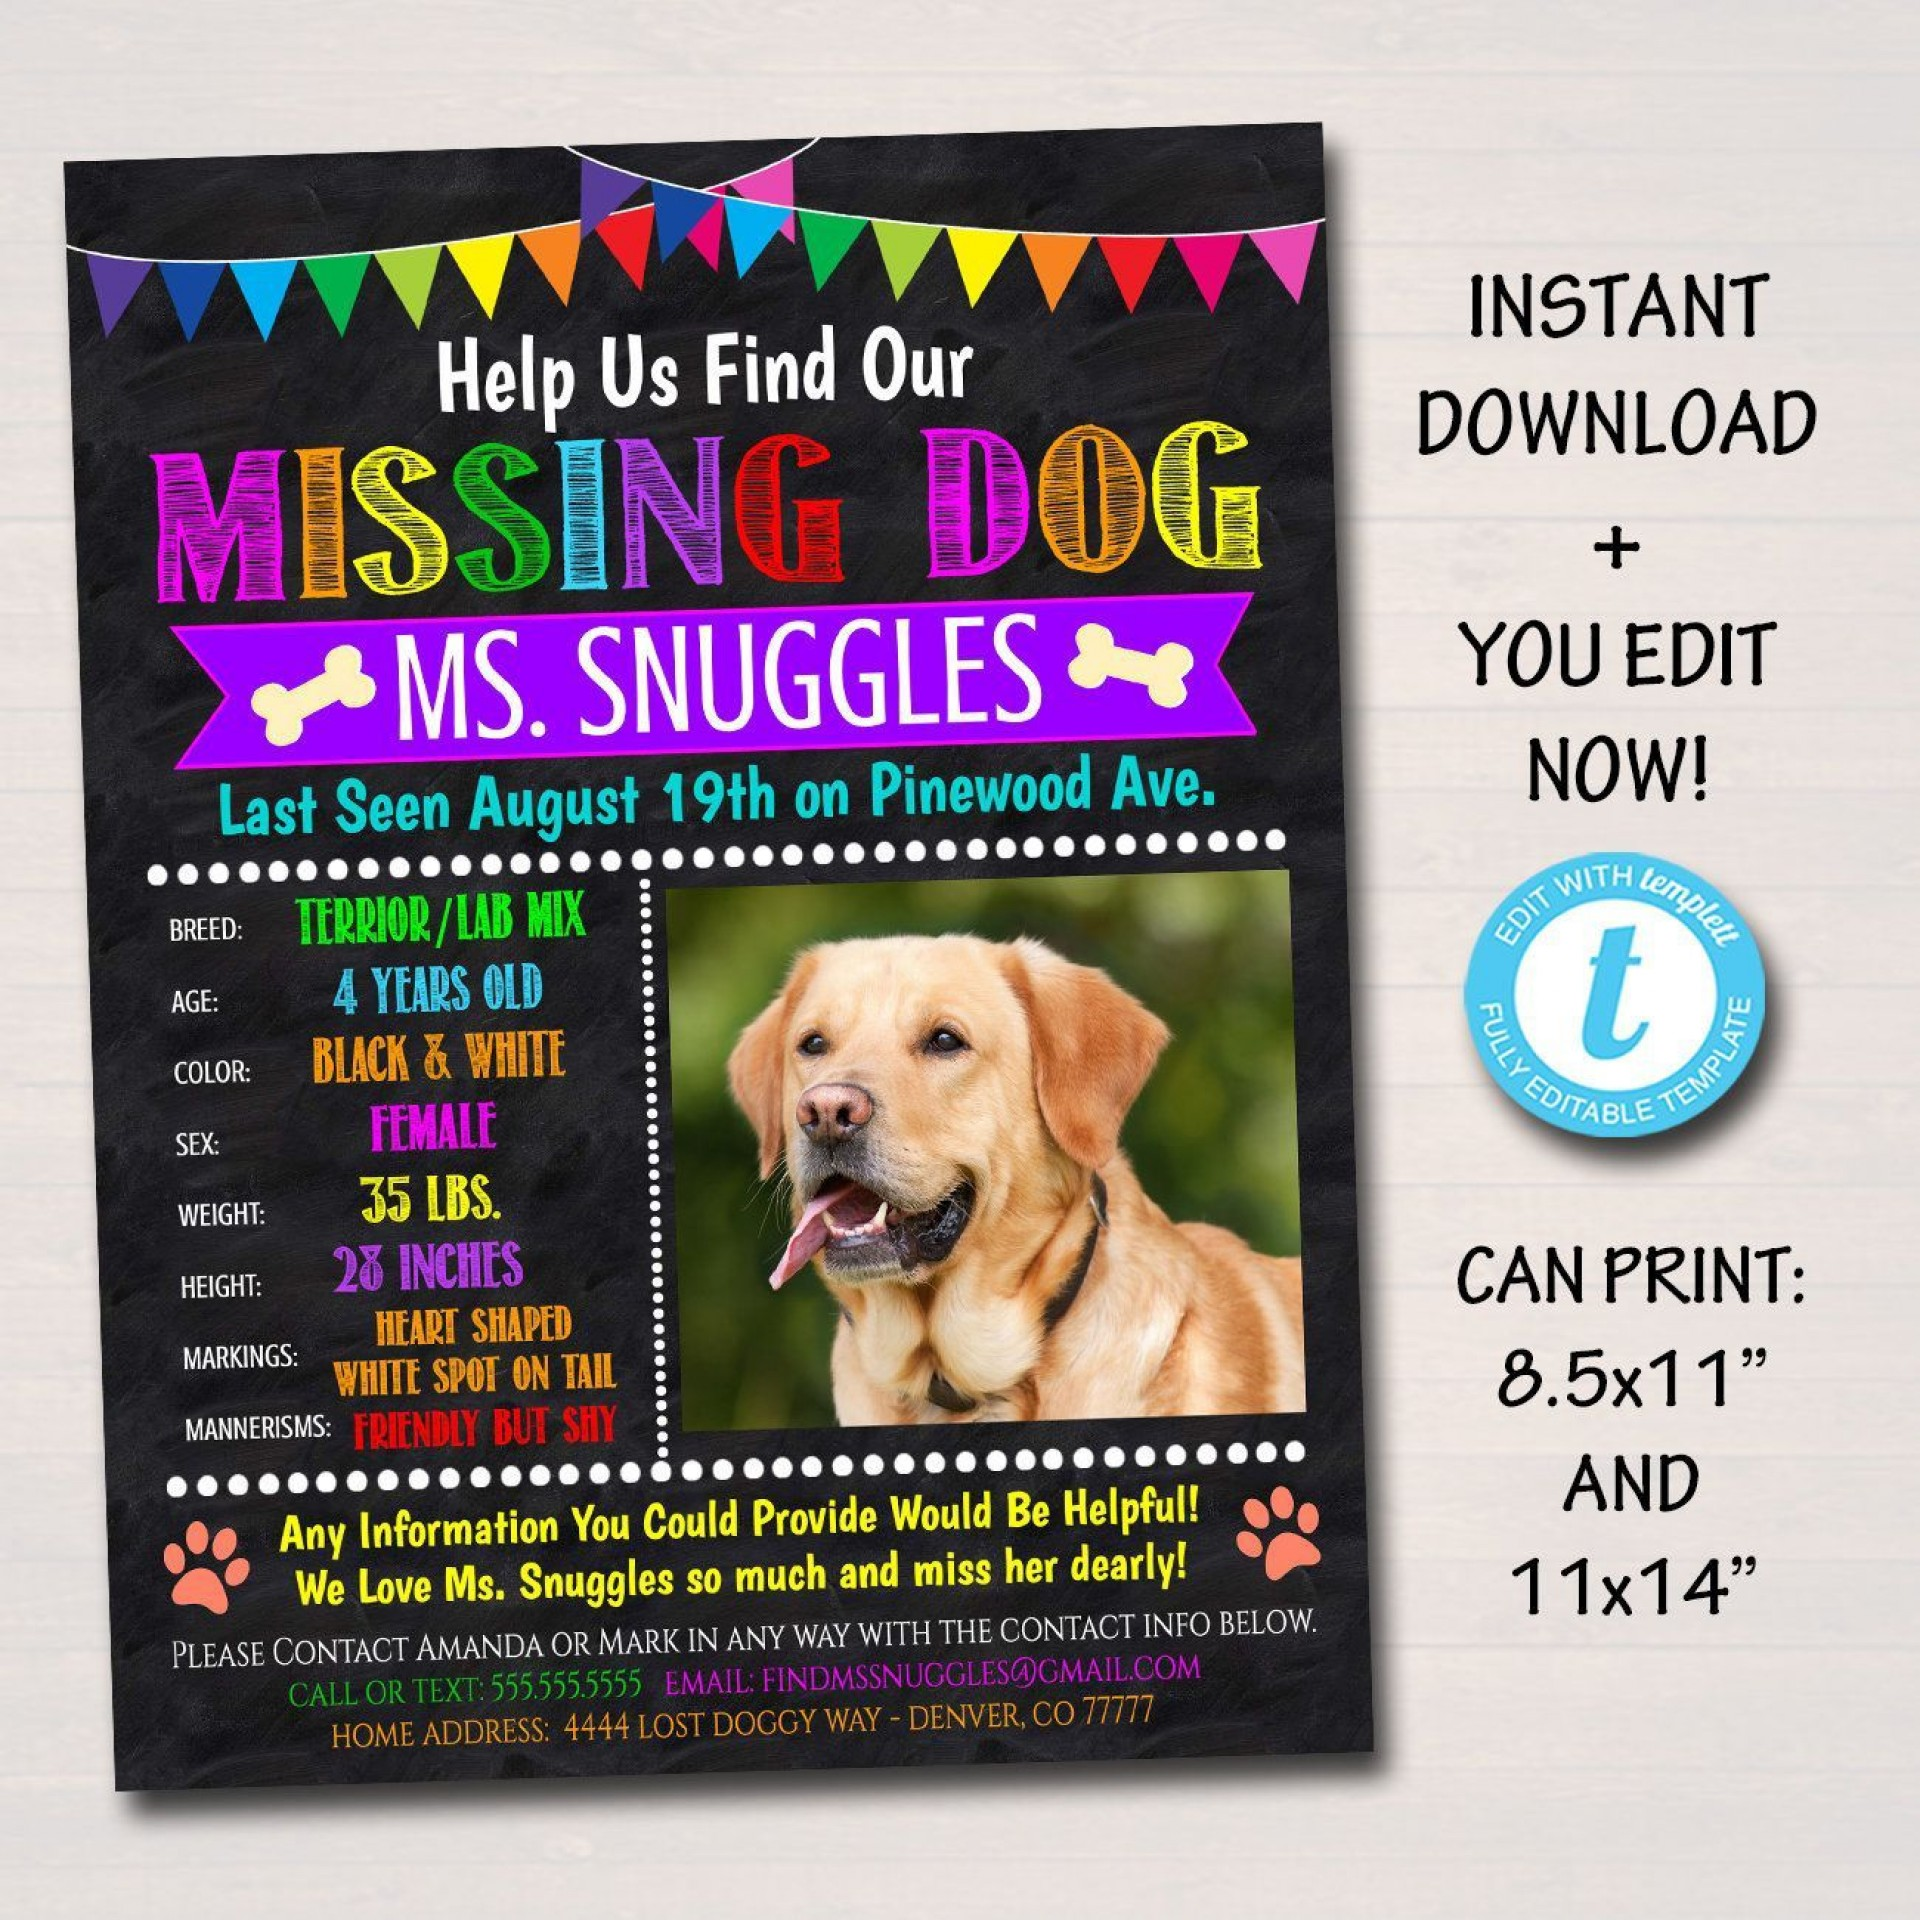 004 Unique Lost Dog Flyer Template Concept  Printable Free Missing Pet1920